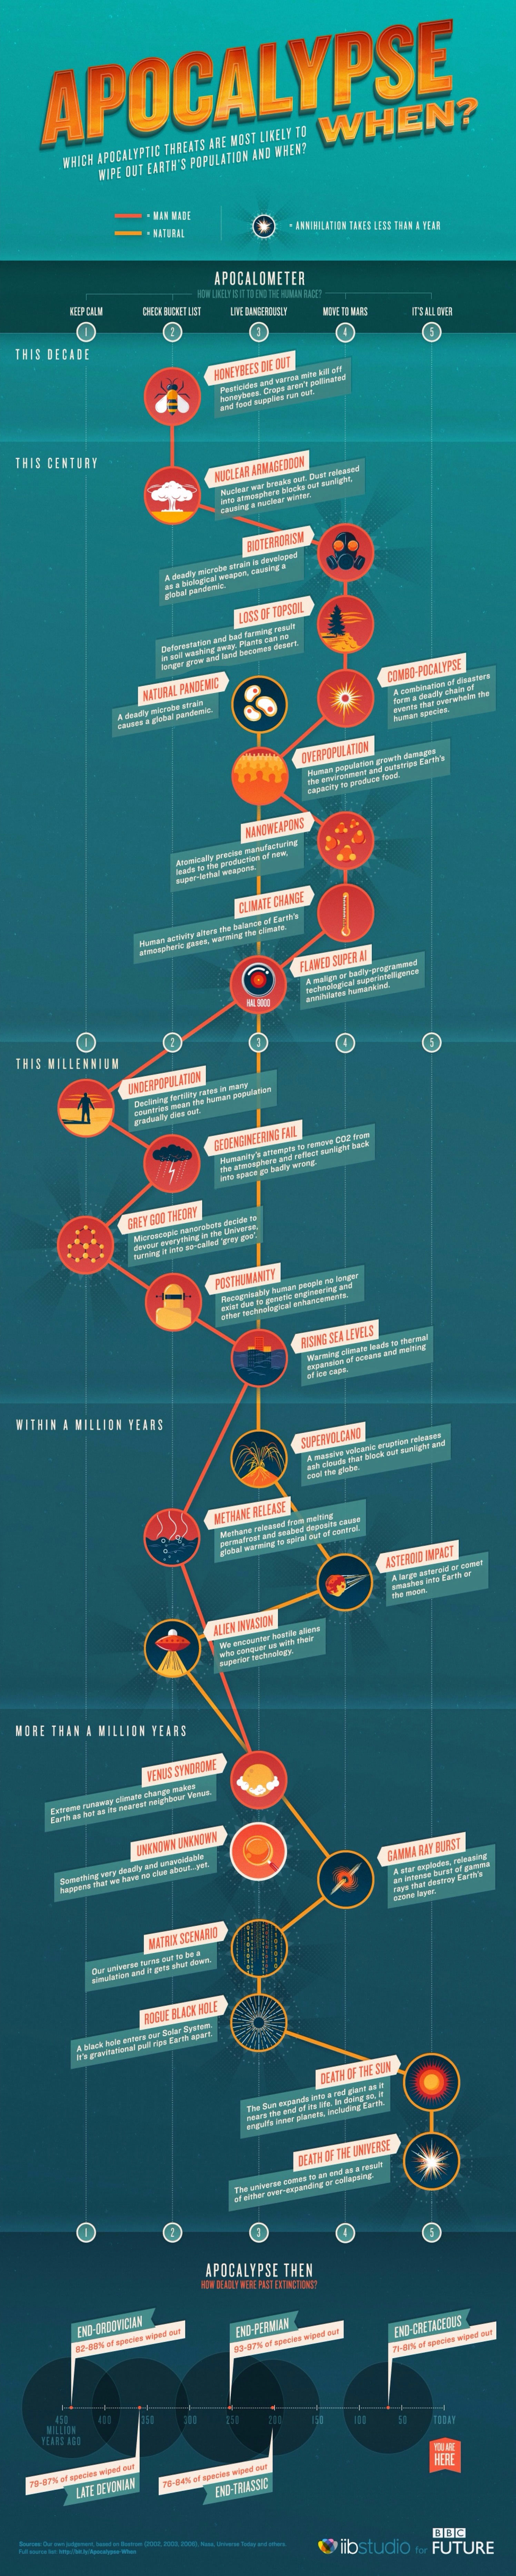 Apocalyptic Threats That Could Trigger Human Extinction Infographic